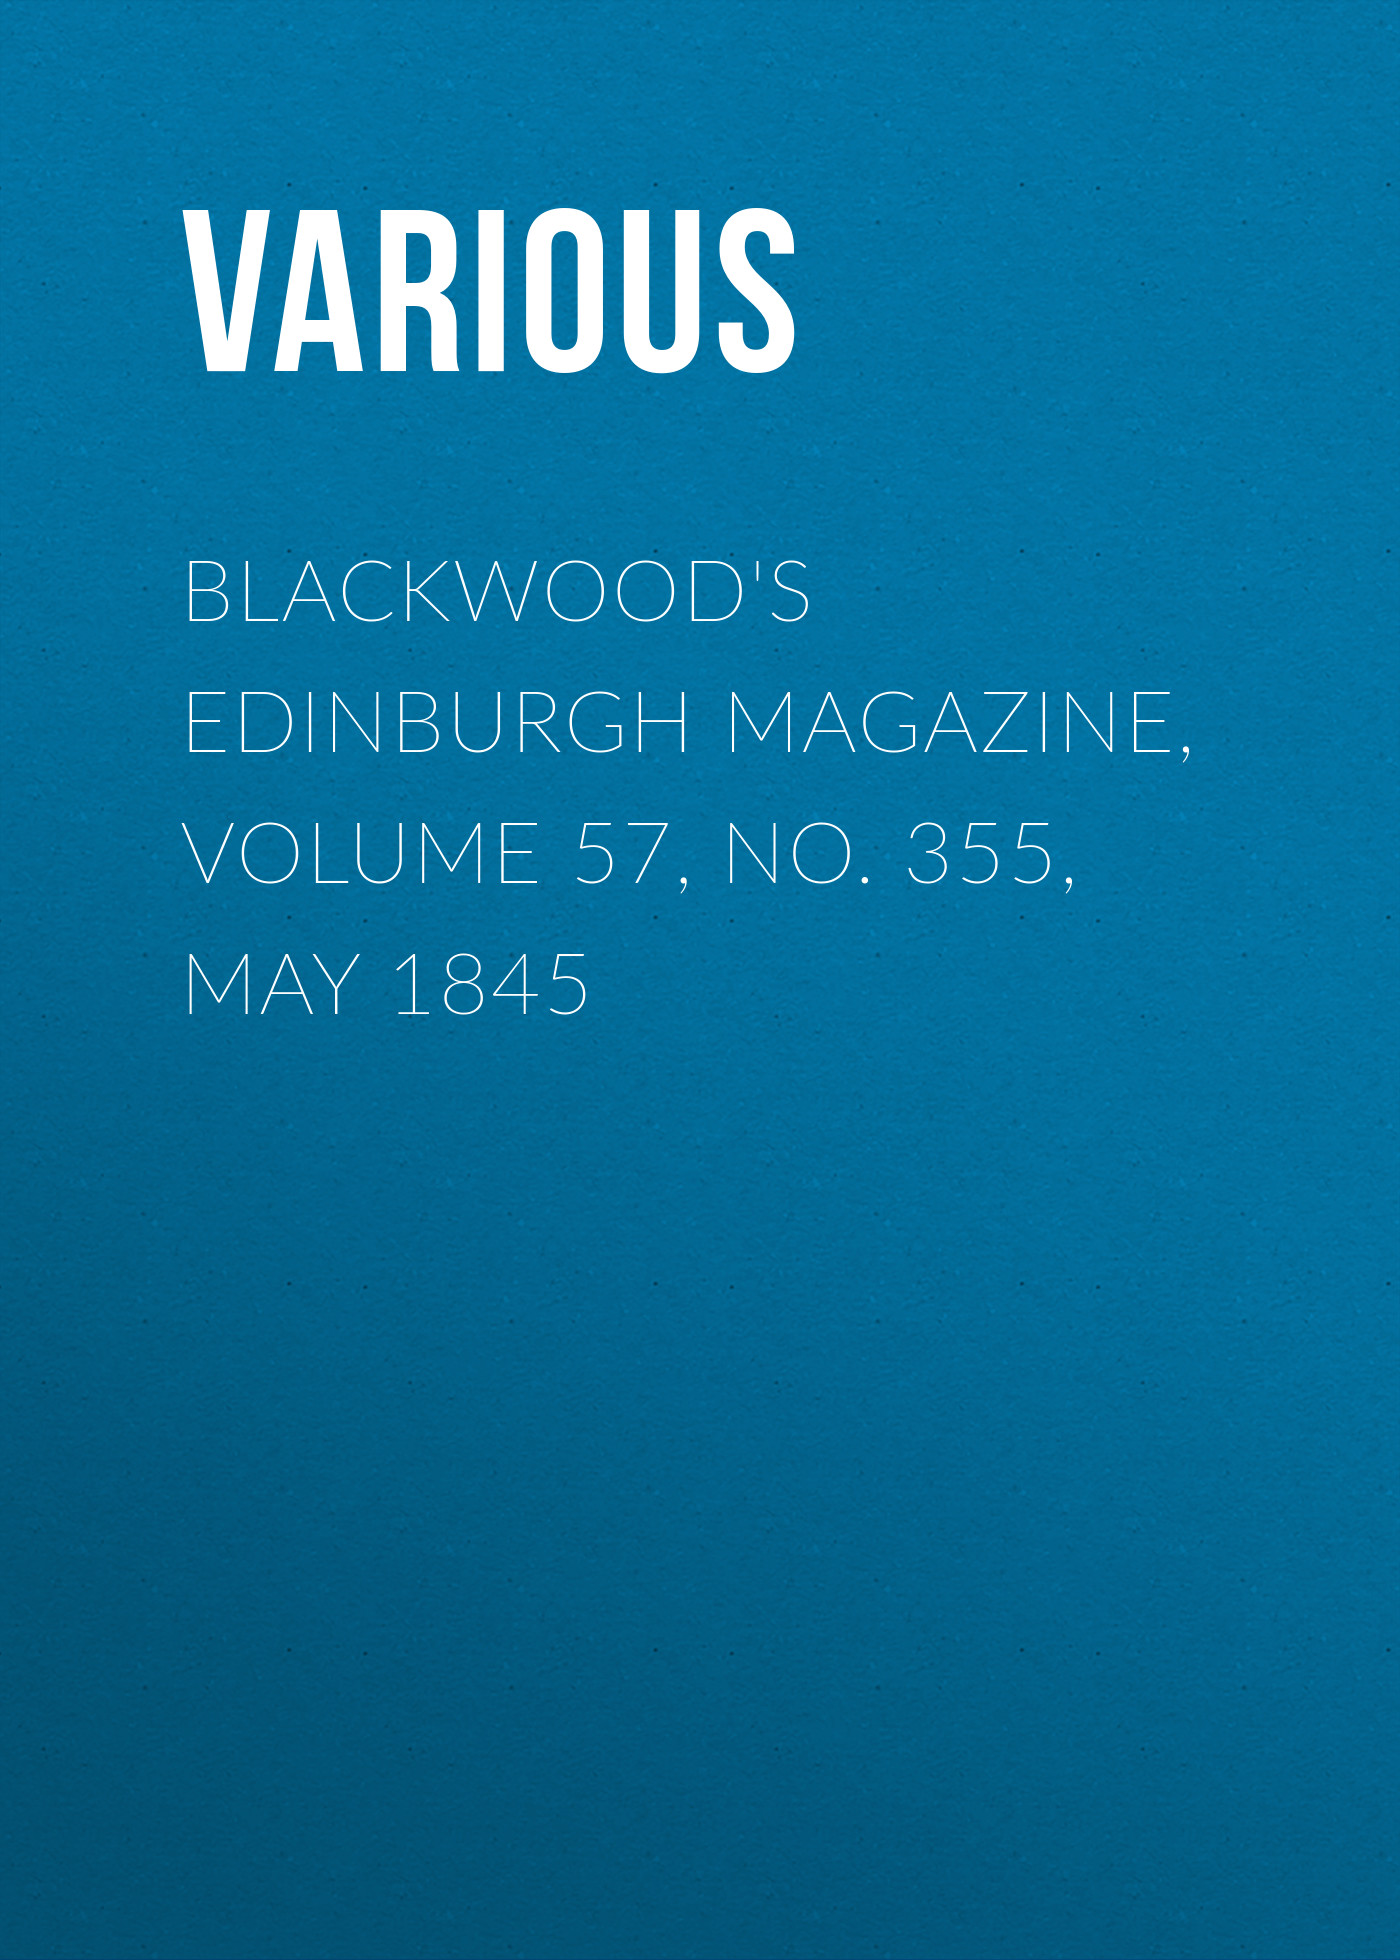 Various Blackwood's Edinburgh Magazine, Volume 57, No. 355, May 1845